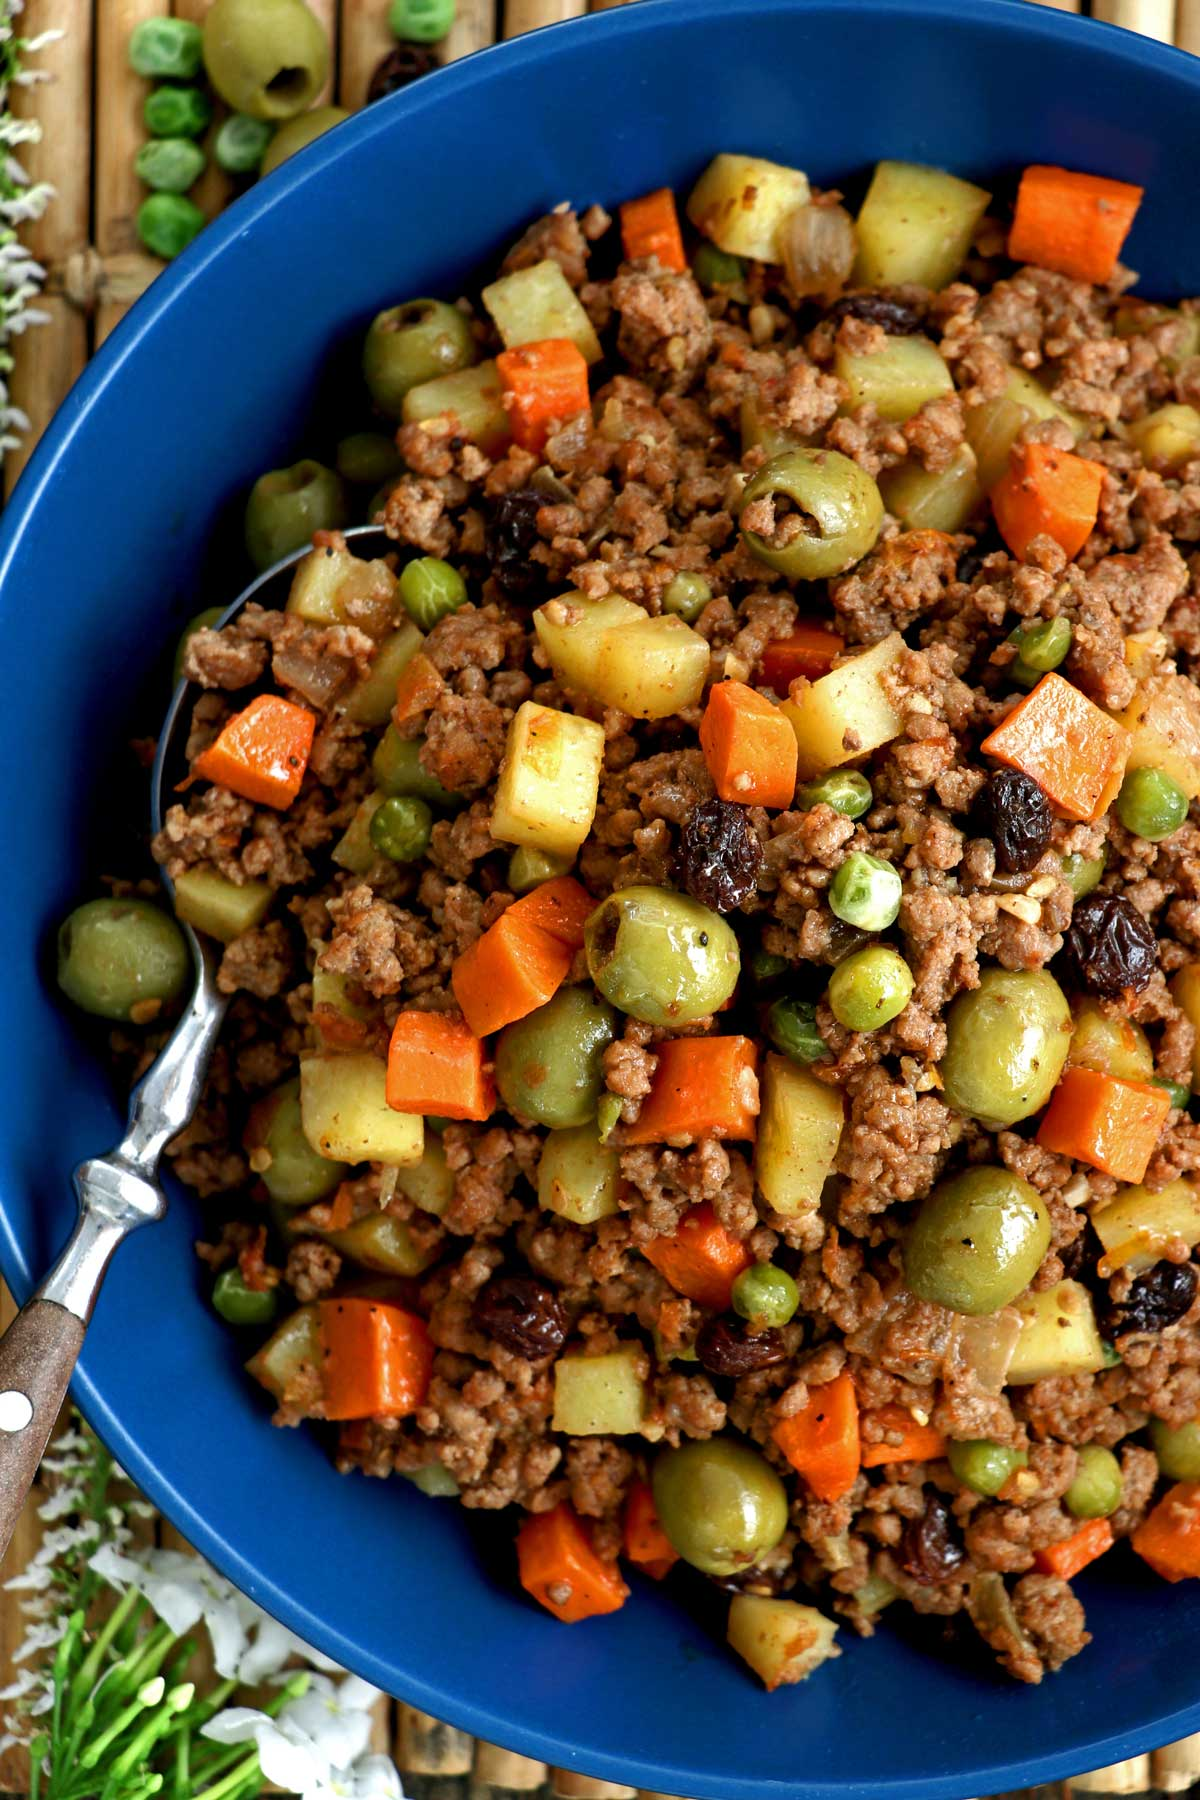 Picadillo recipe complete with ground beef, potatoes, carrots, olives, green peas, and raisins cooked in fresh tomatoes.